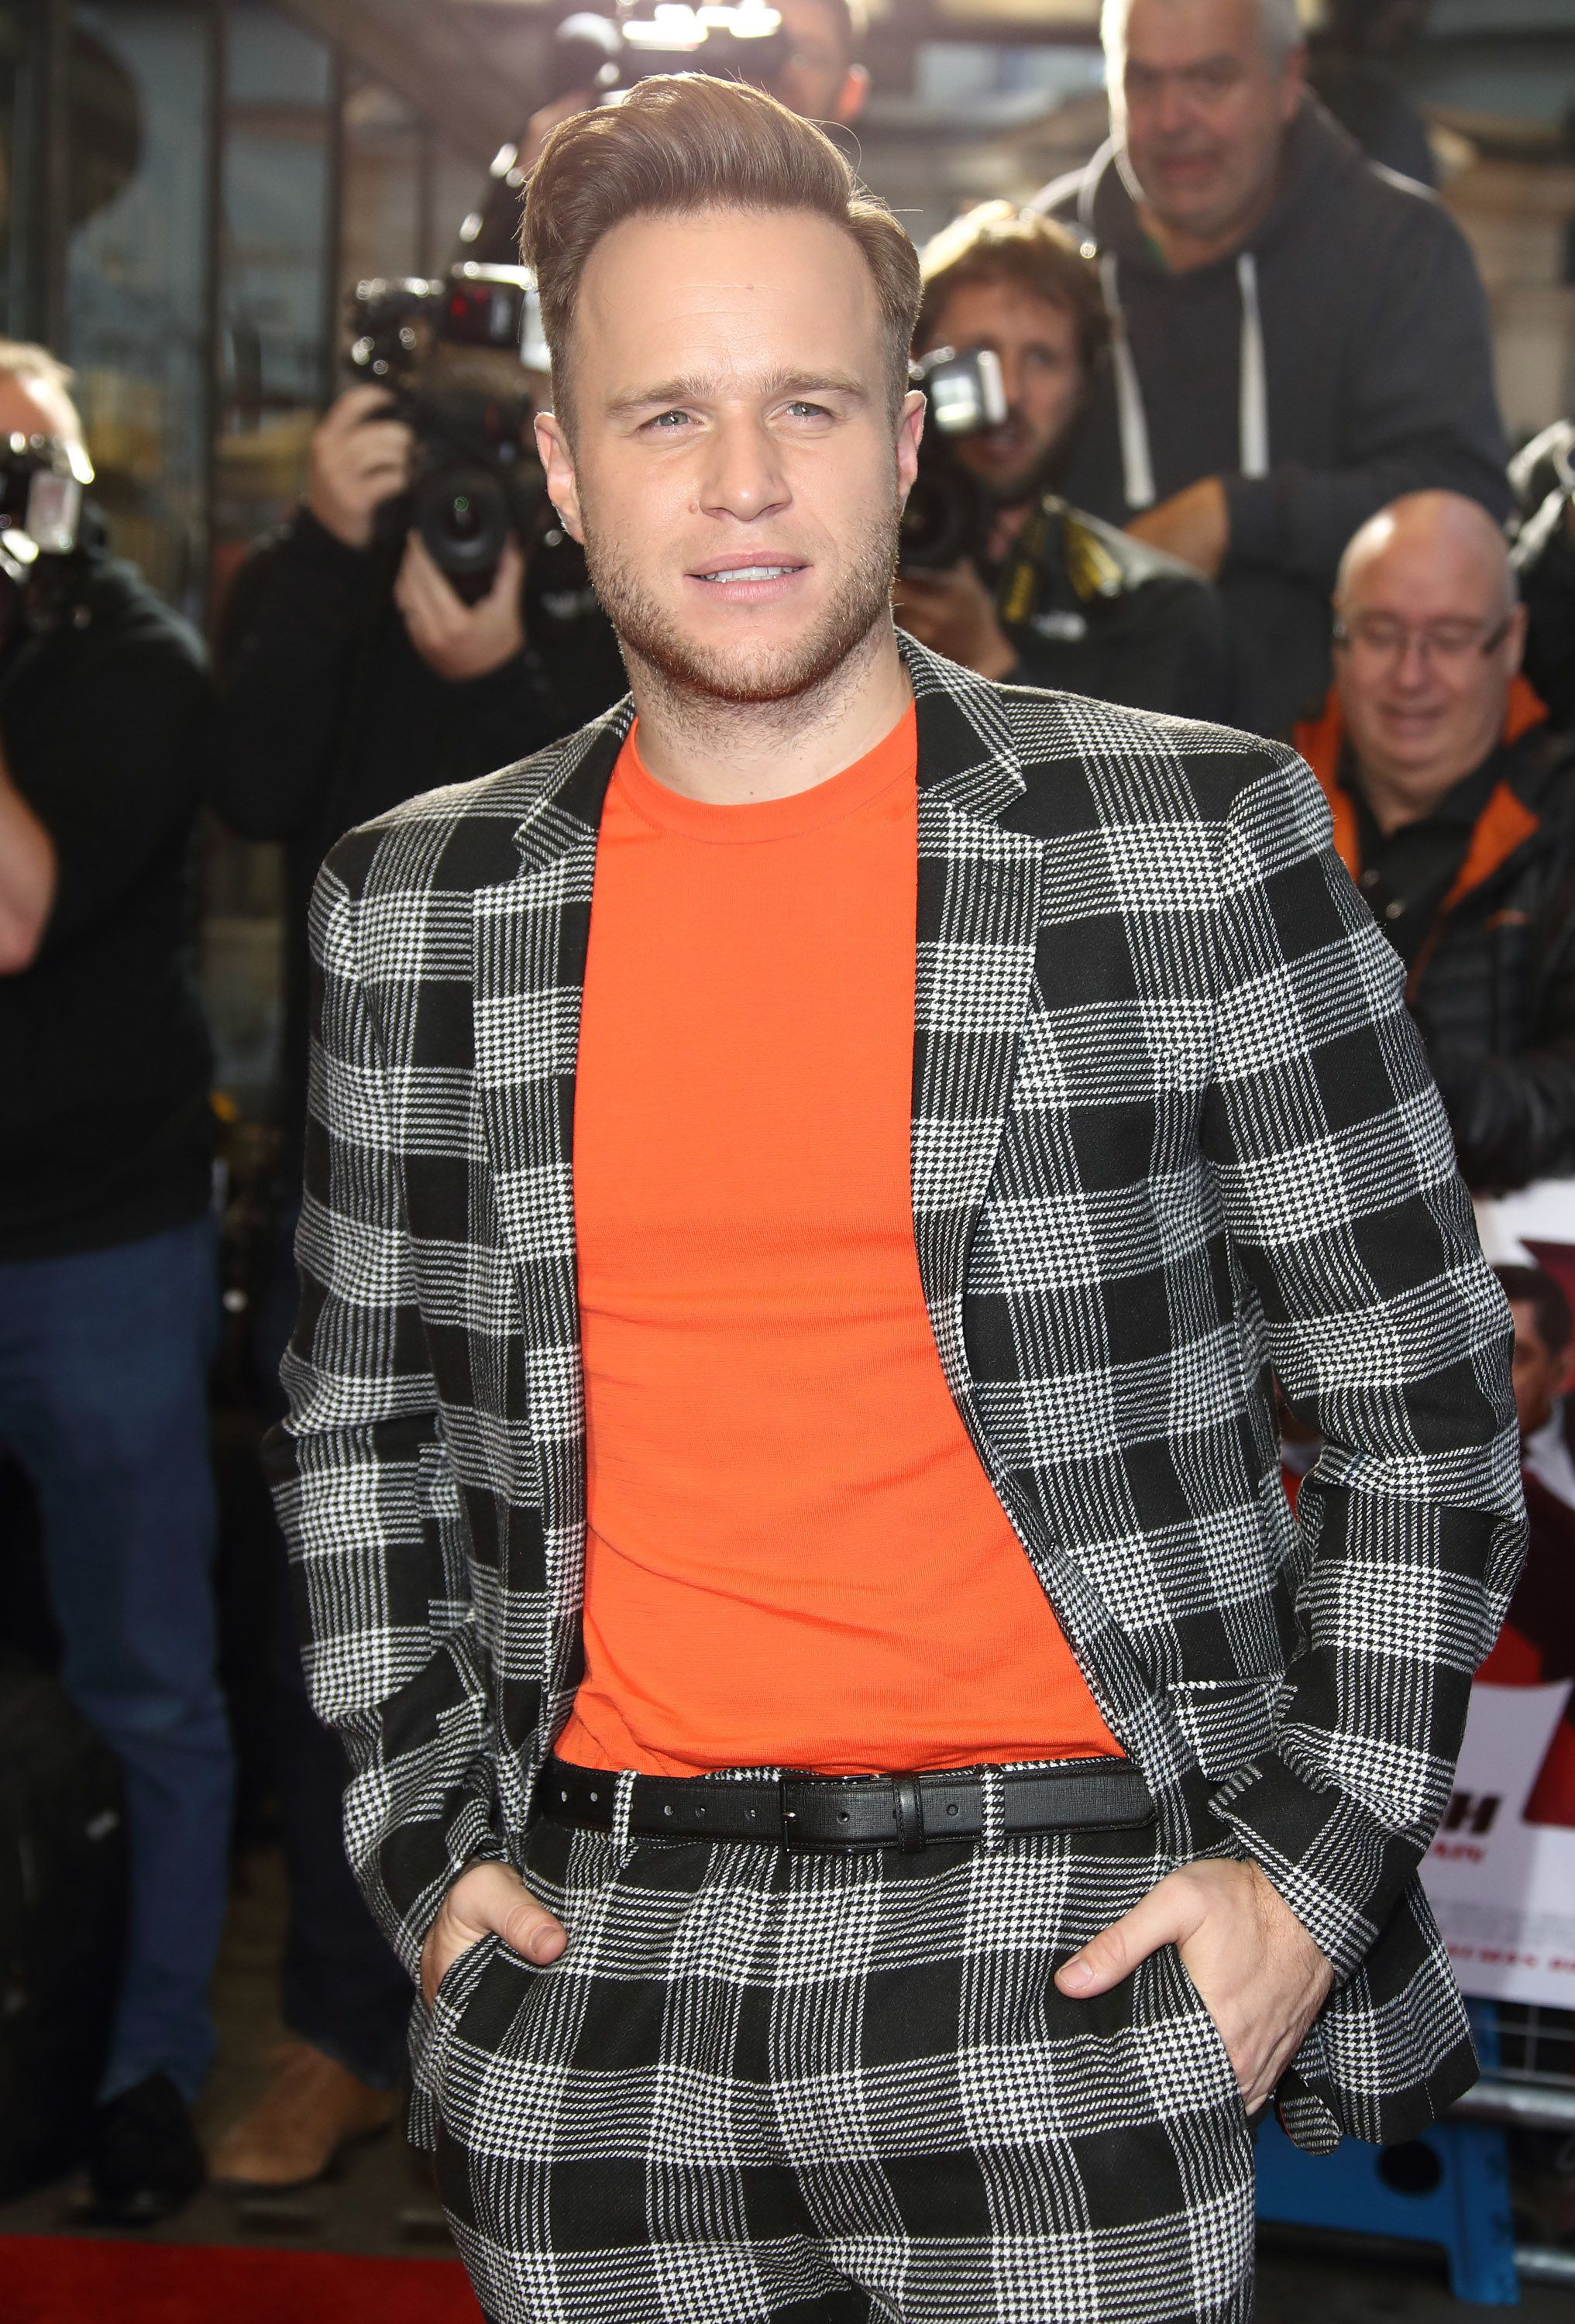 Olly Murs Suggests He Might Not Be 'On Talking Terms' With Simon Cowell Over 'X Factor'